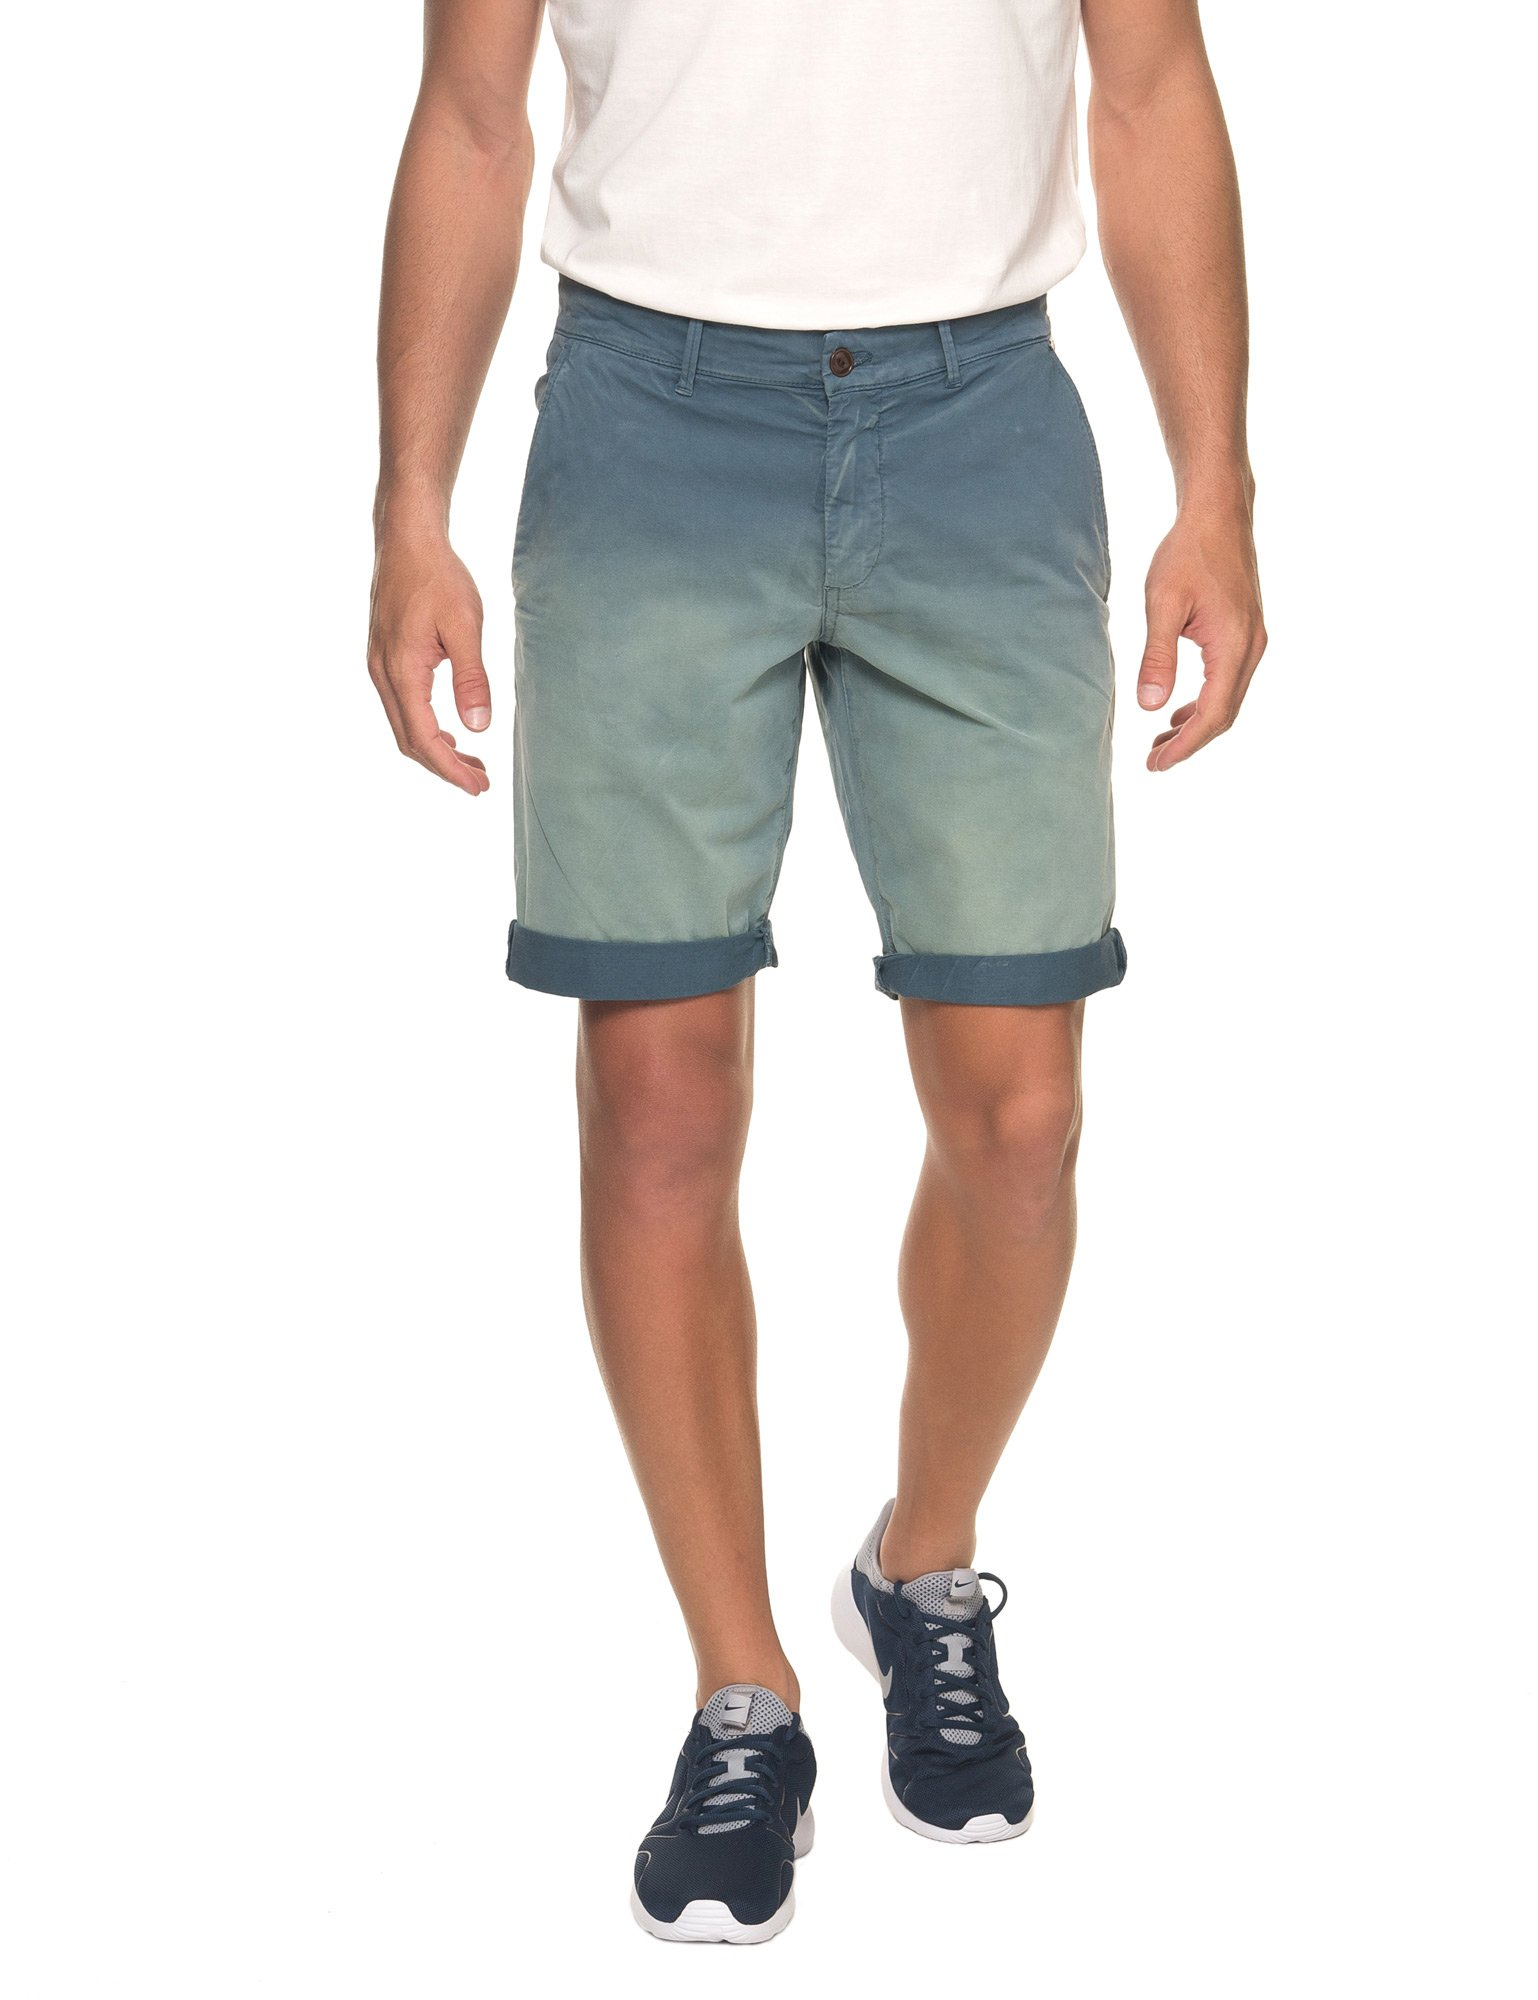 Franklin & Marshall Men's Men's Chino Shorts With Fade Out in Size 38 Blue